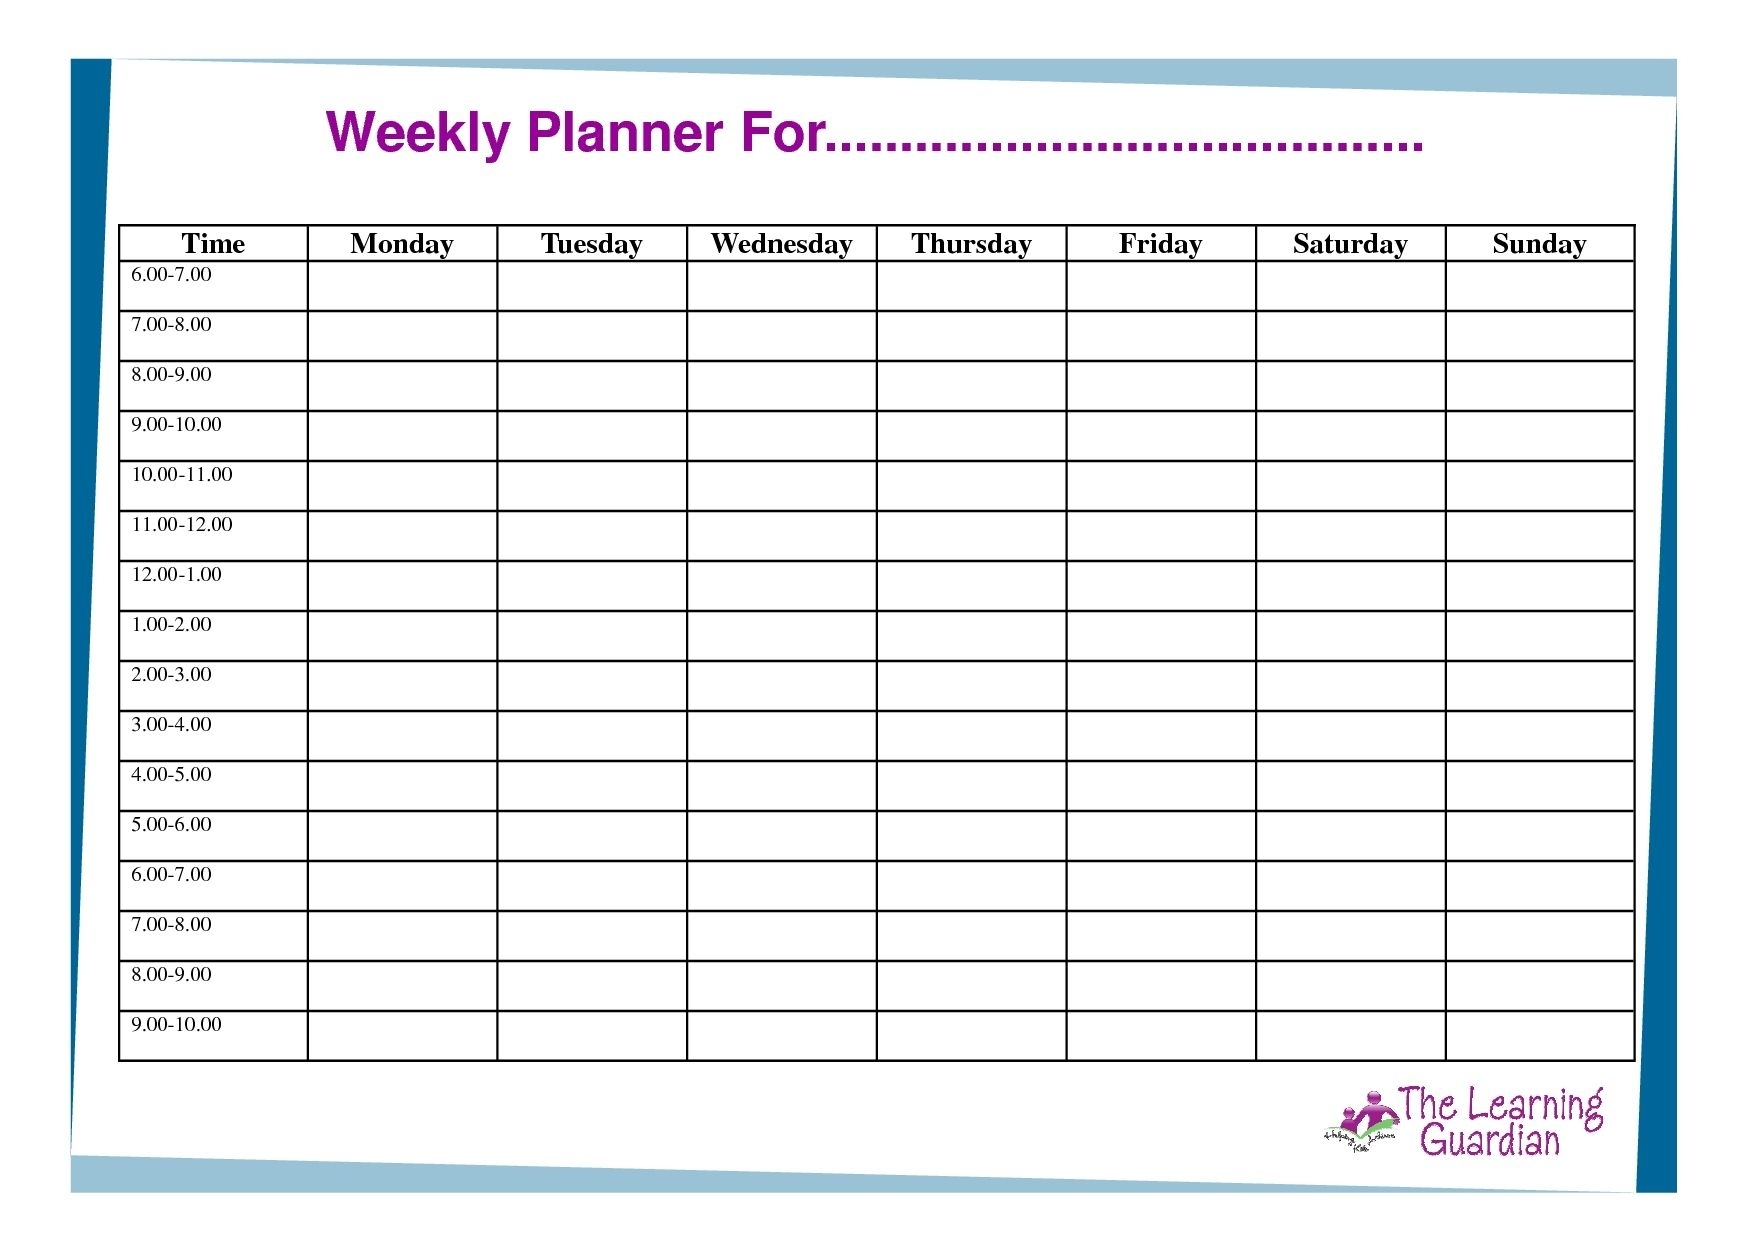 Free Printable Weekly Calendar Templates Planner For Time Incredible within 7 Day Time Weekly Planner